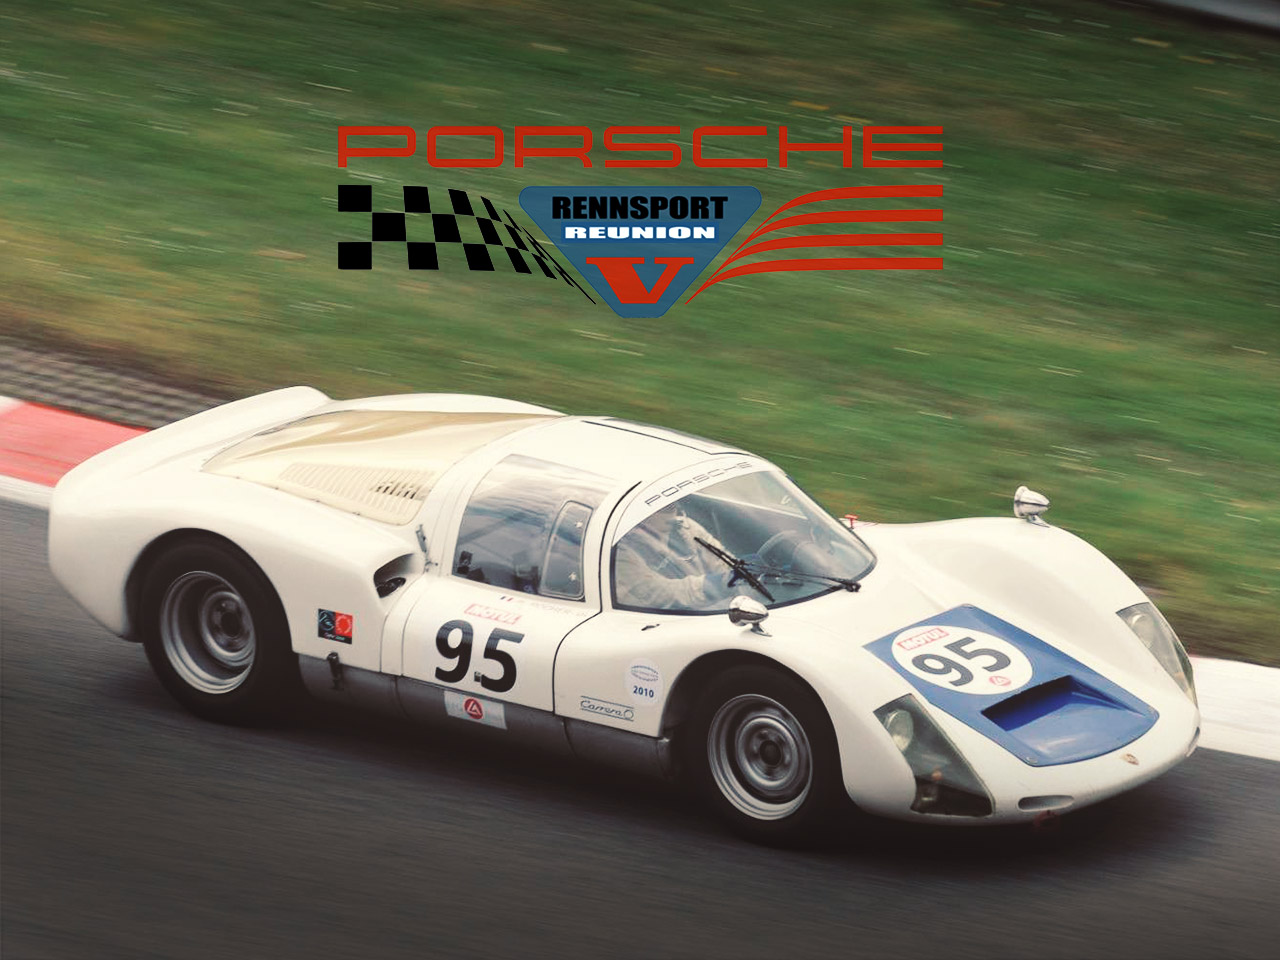 Porsche Our Heritage Highlight of the Year: Porsche Rennsport Reunion V.